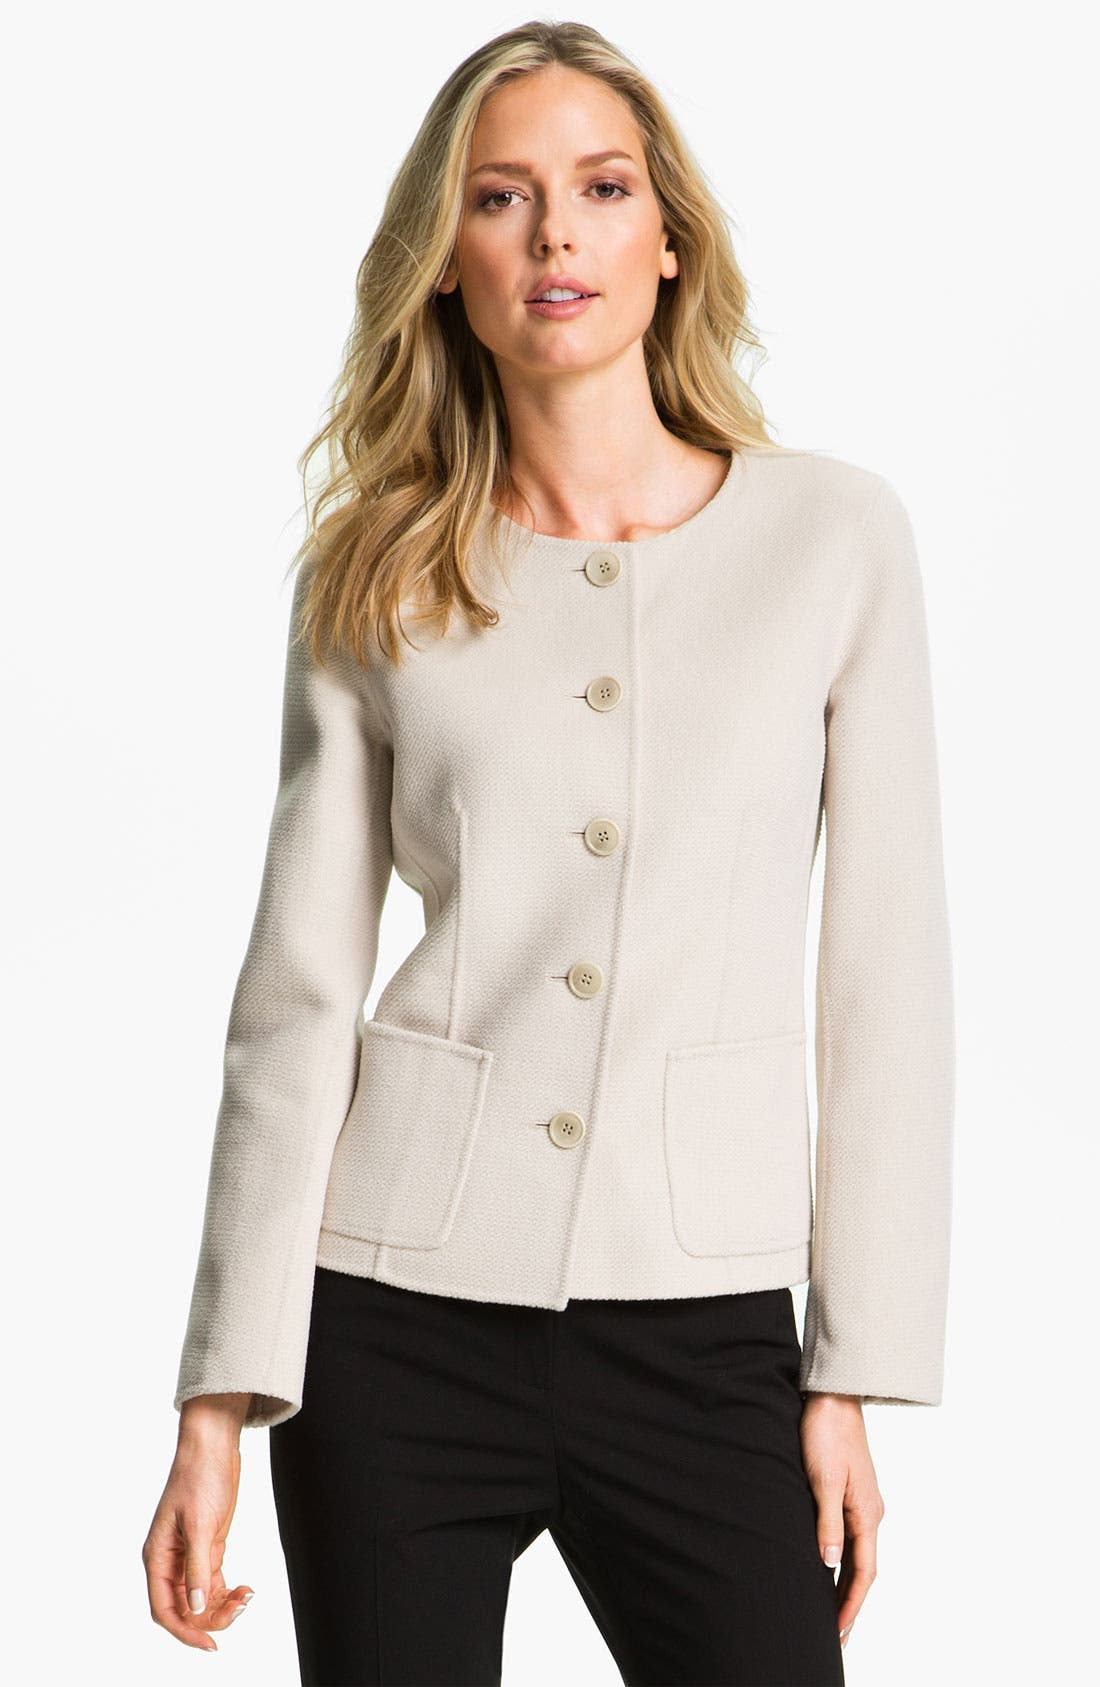 Alternate Image 1 Selected - Lafayette 148 New York 'Bellamy' Jacket